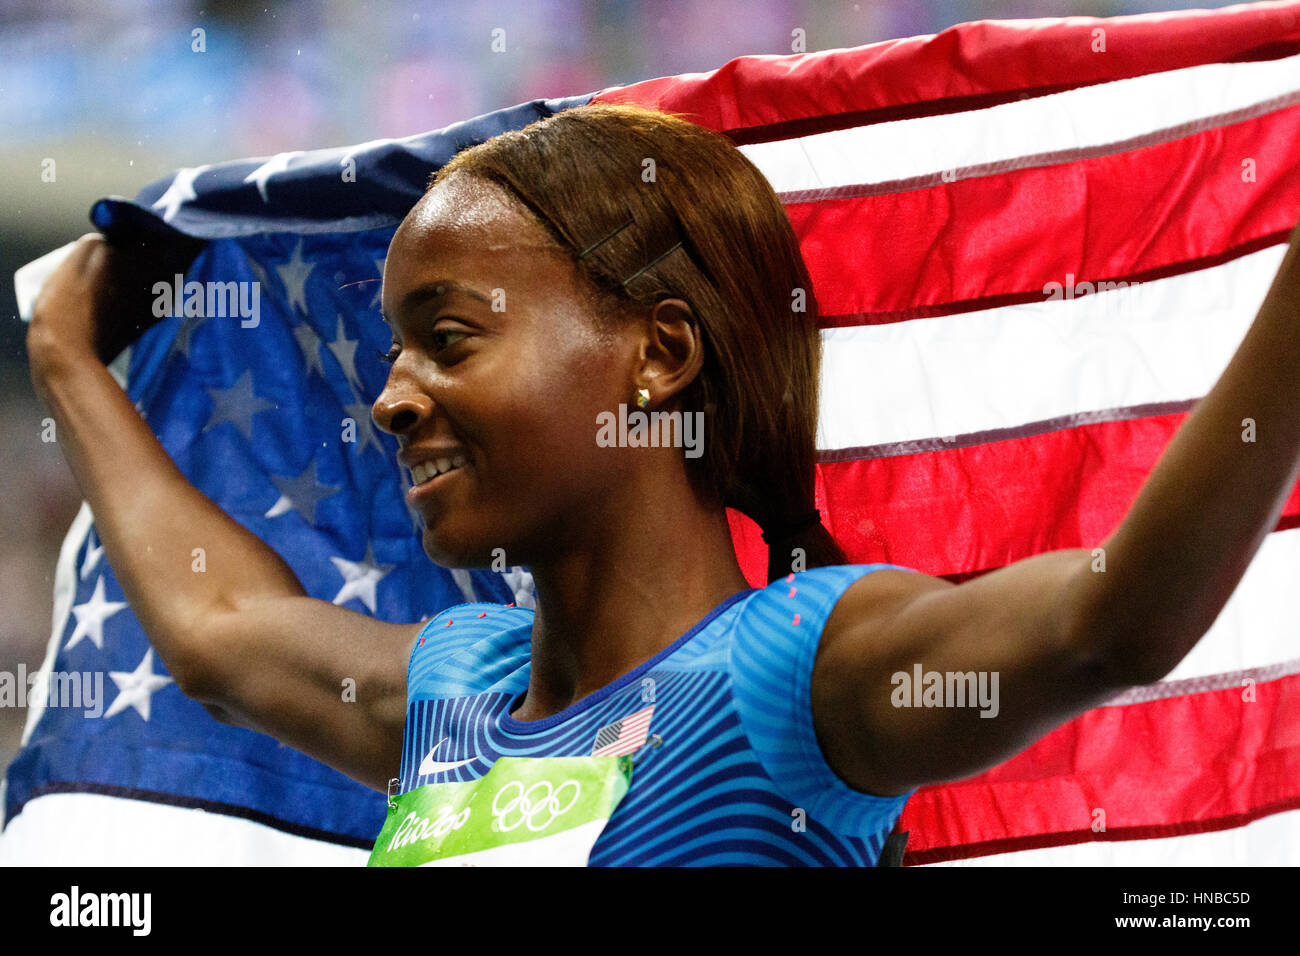 Rio de Janeiro, Brazil. 18 August 2016.  Athletics, Dalilah Muhammad (USA) wins the gold medal in the Women's - Stock Image